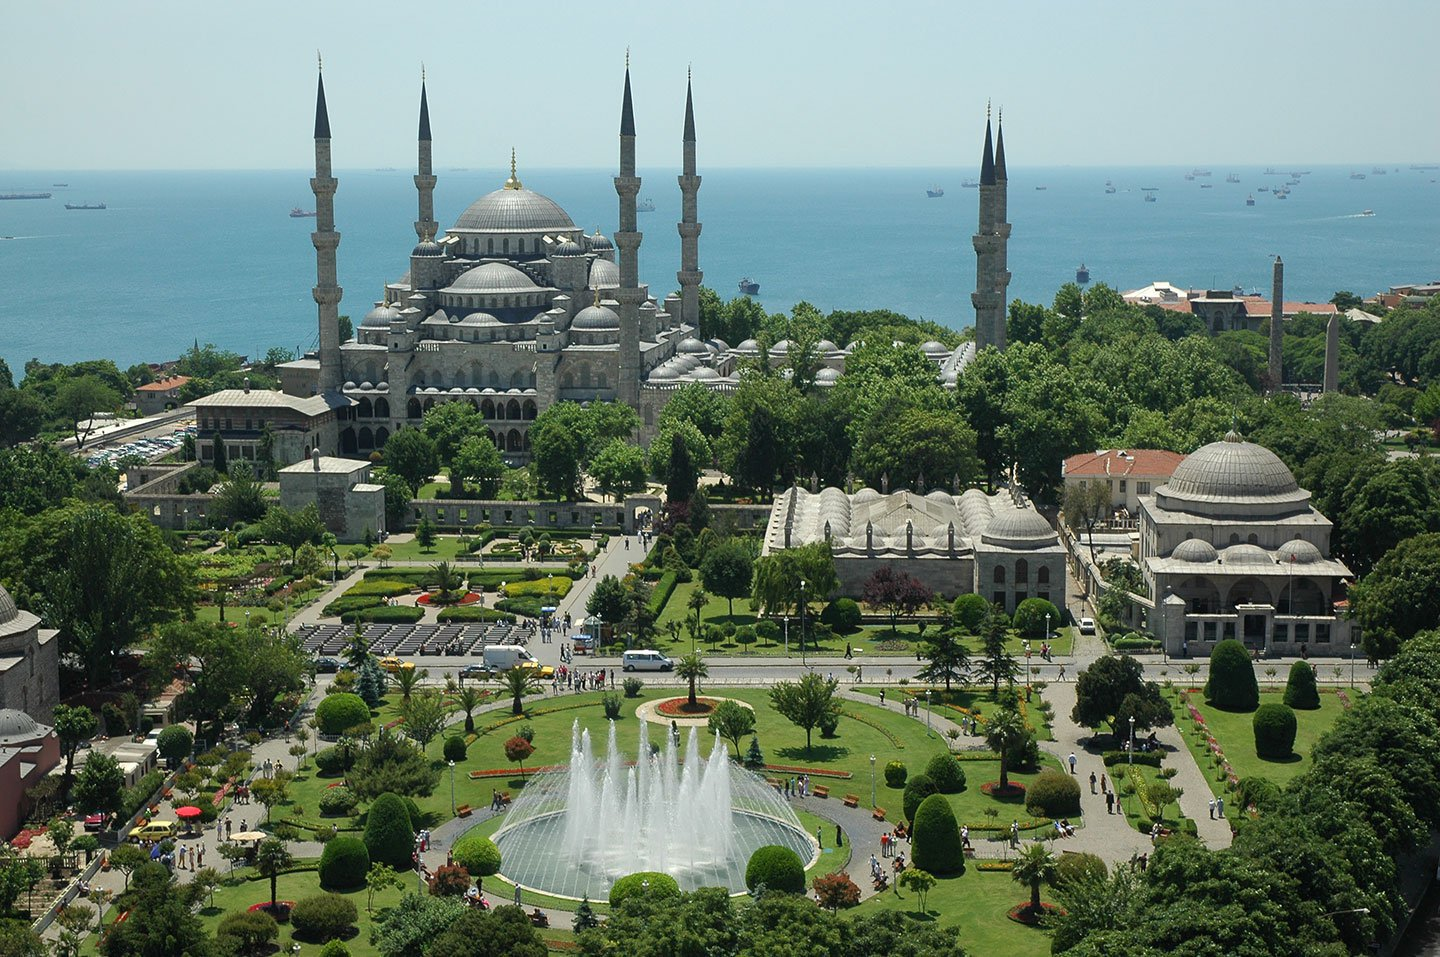 Blue Mosque (Guided Tour)